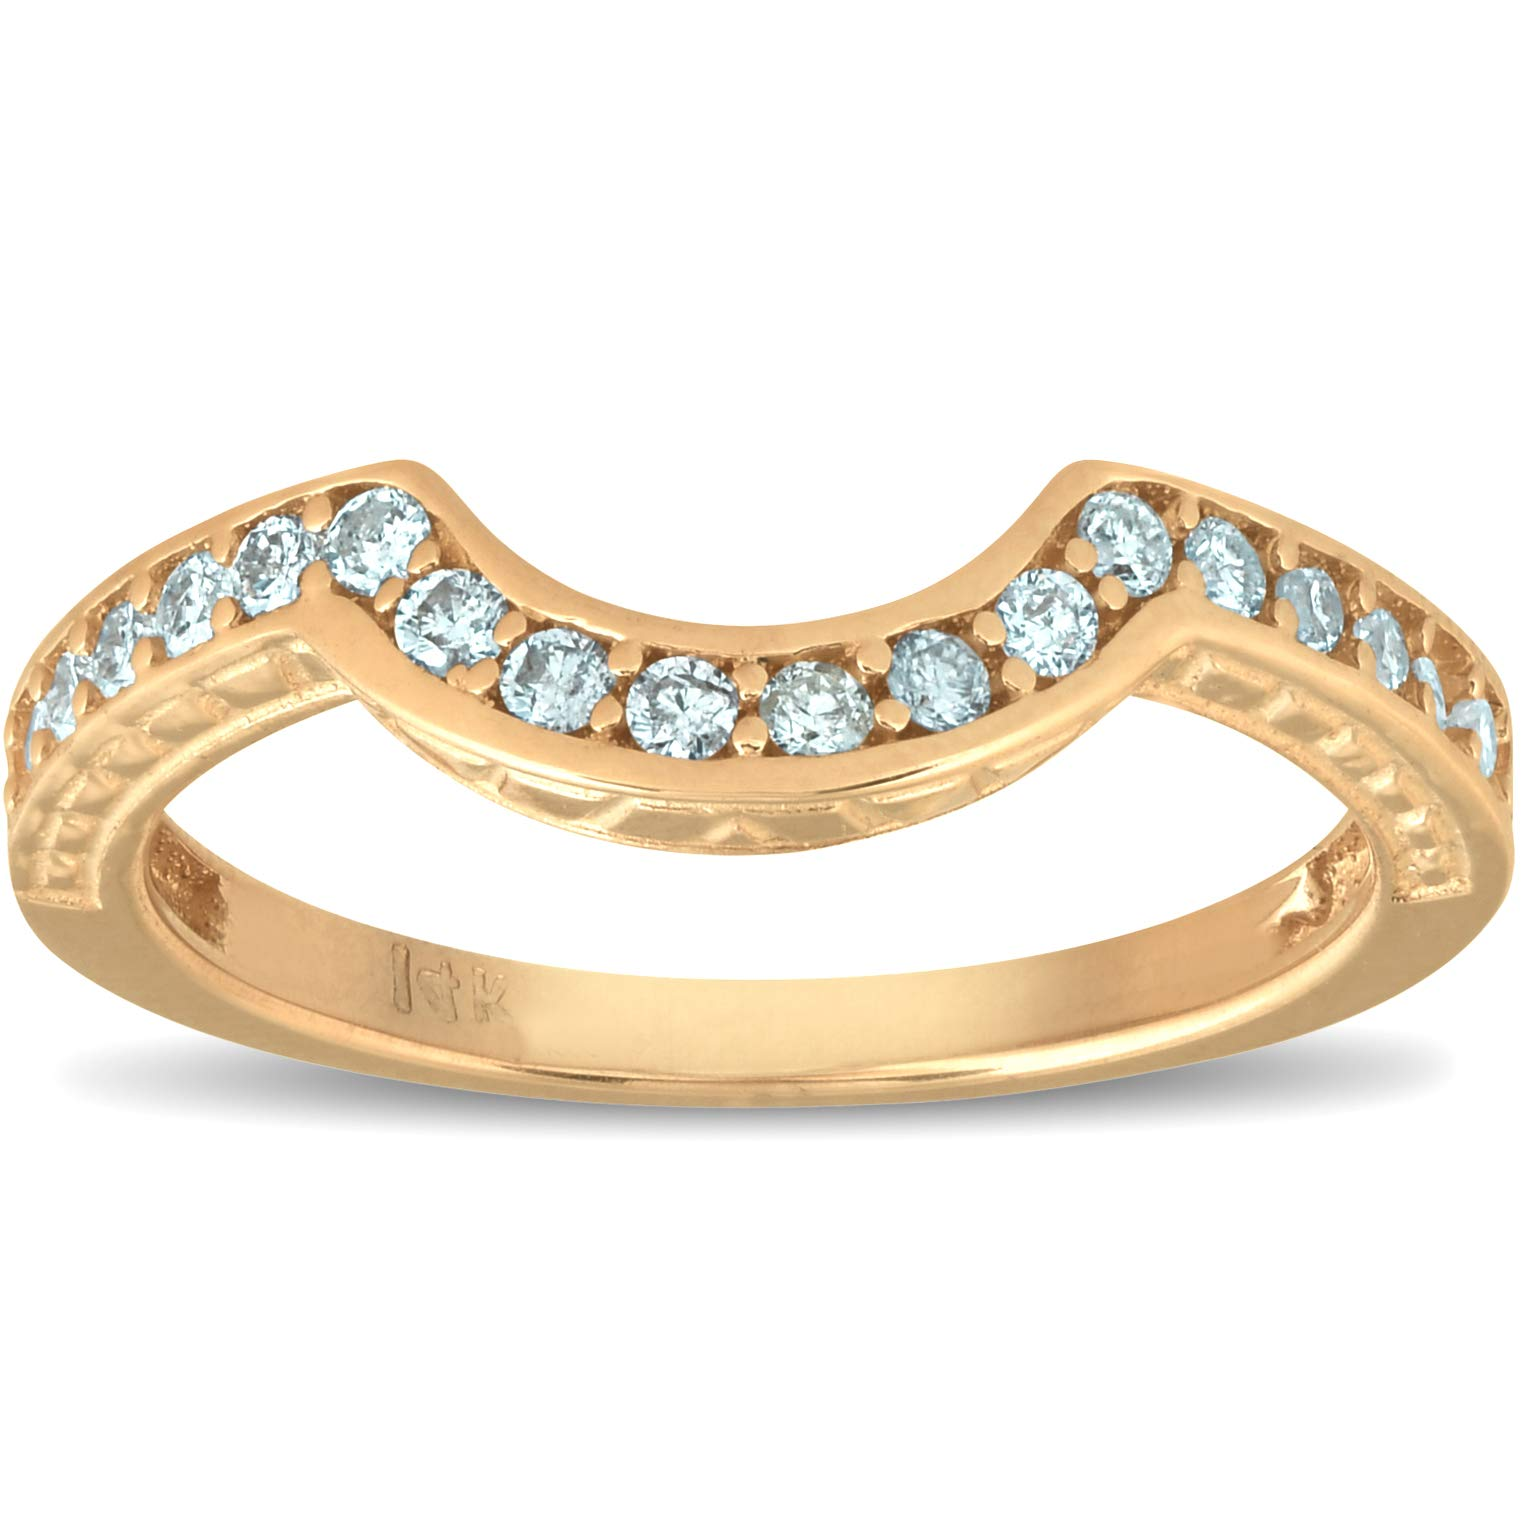 1/4ct Vintage Diamond Curved Guard Ring 14K Rose Gold - Size 8